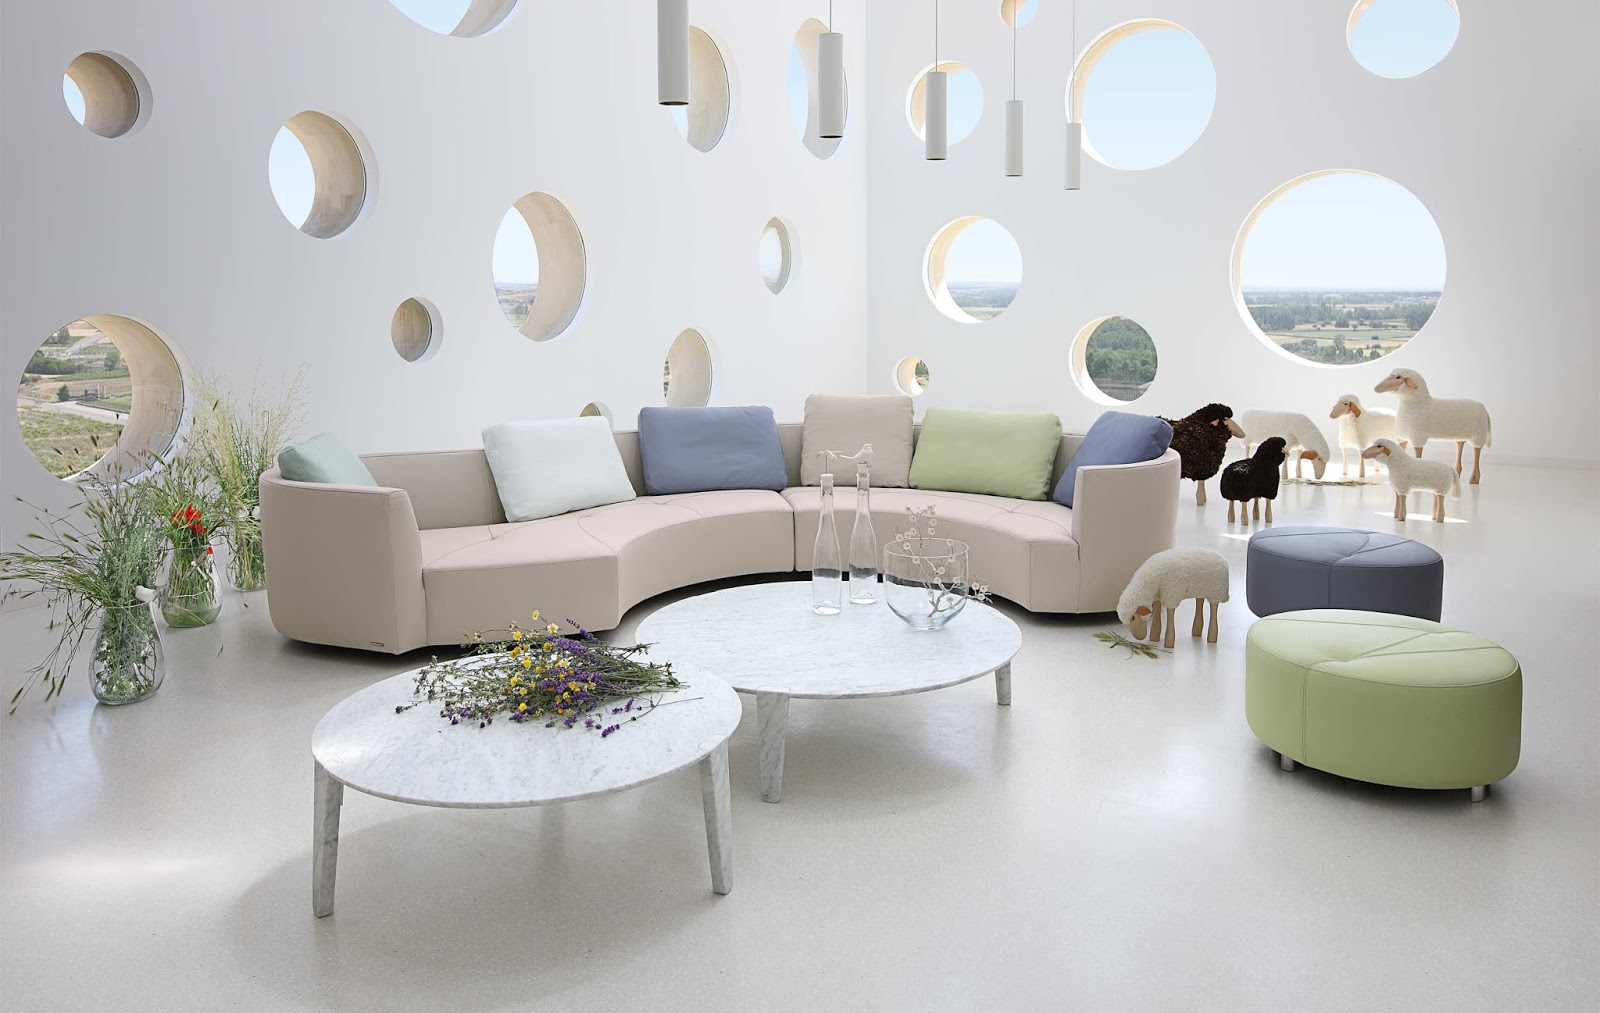 Darya girina interior design march 2015 - And Now I D Like To Show My Favourite Futuristic Sofas And Poufs By Baxter Roche Bobois Gufram Design And Marcel Wanders Contempo Tonin Nika Zupanc